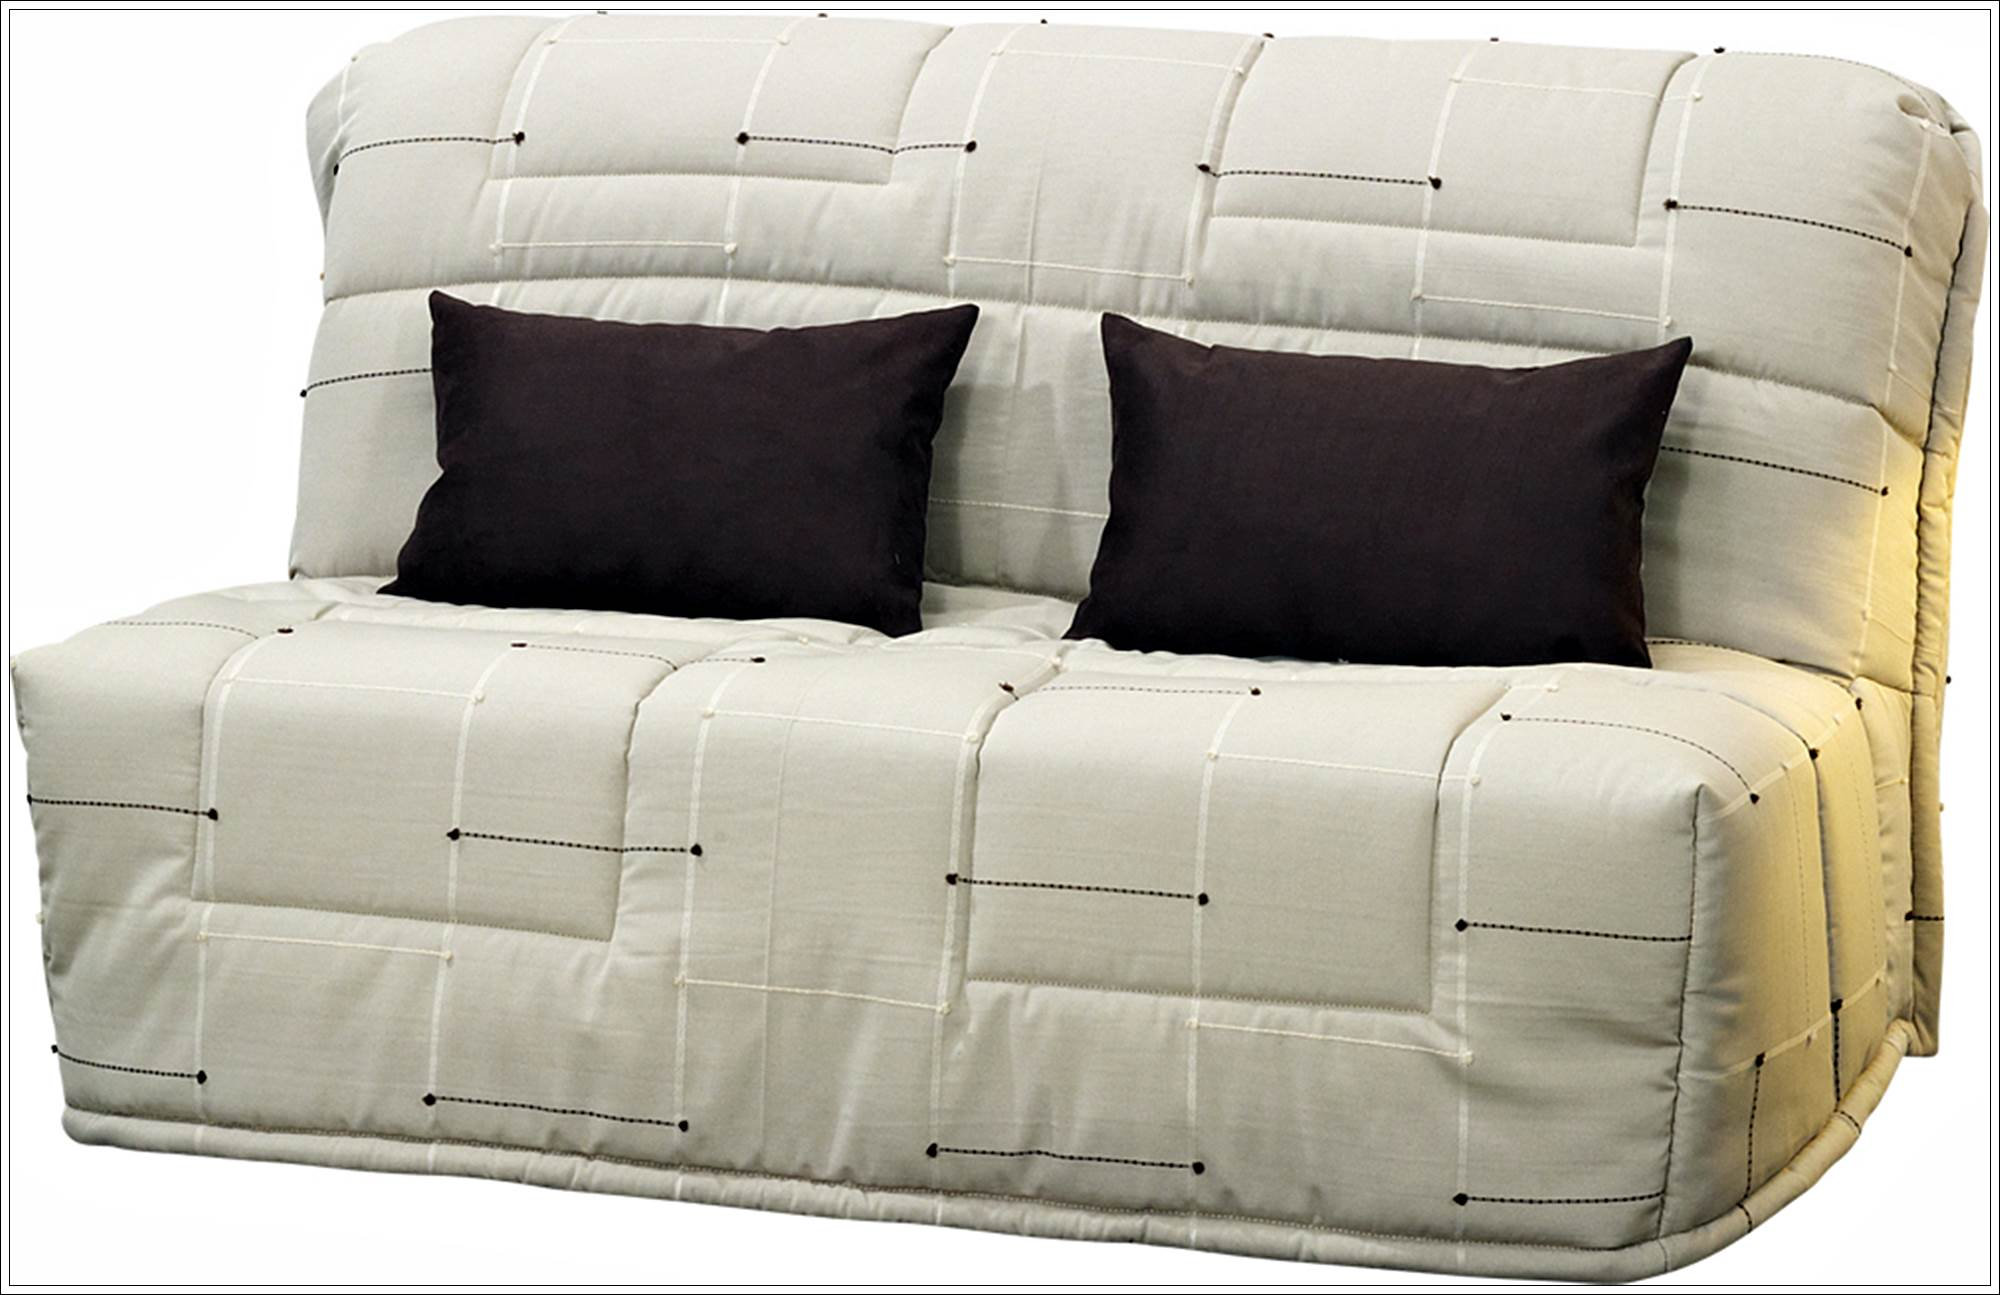 housse canap bz ikea royal sofa id e de canap et meuble maison. Black Bedroom Furniture Sets. Home Design Ideas